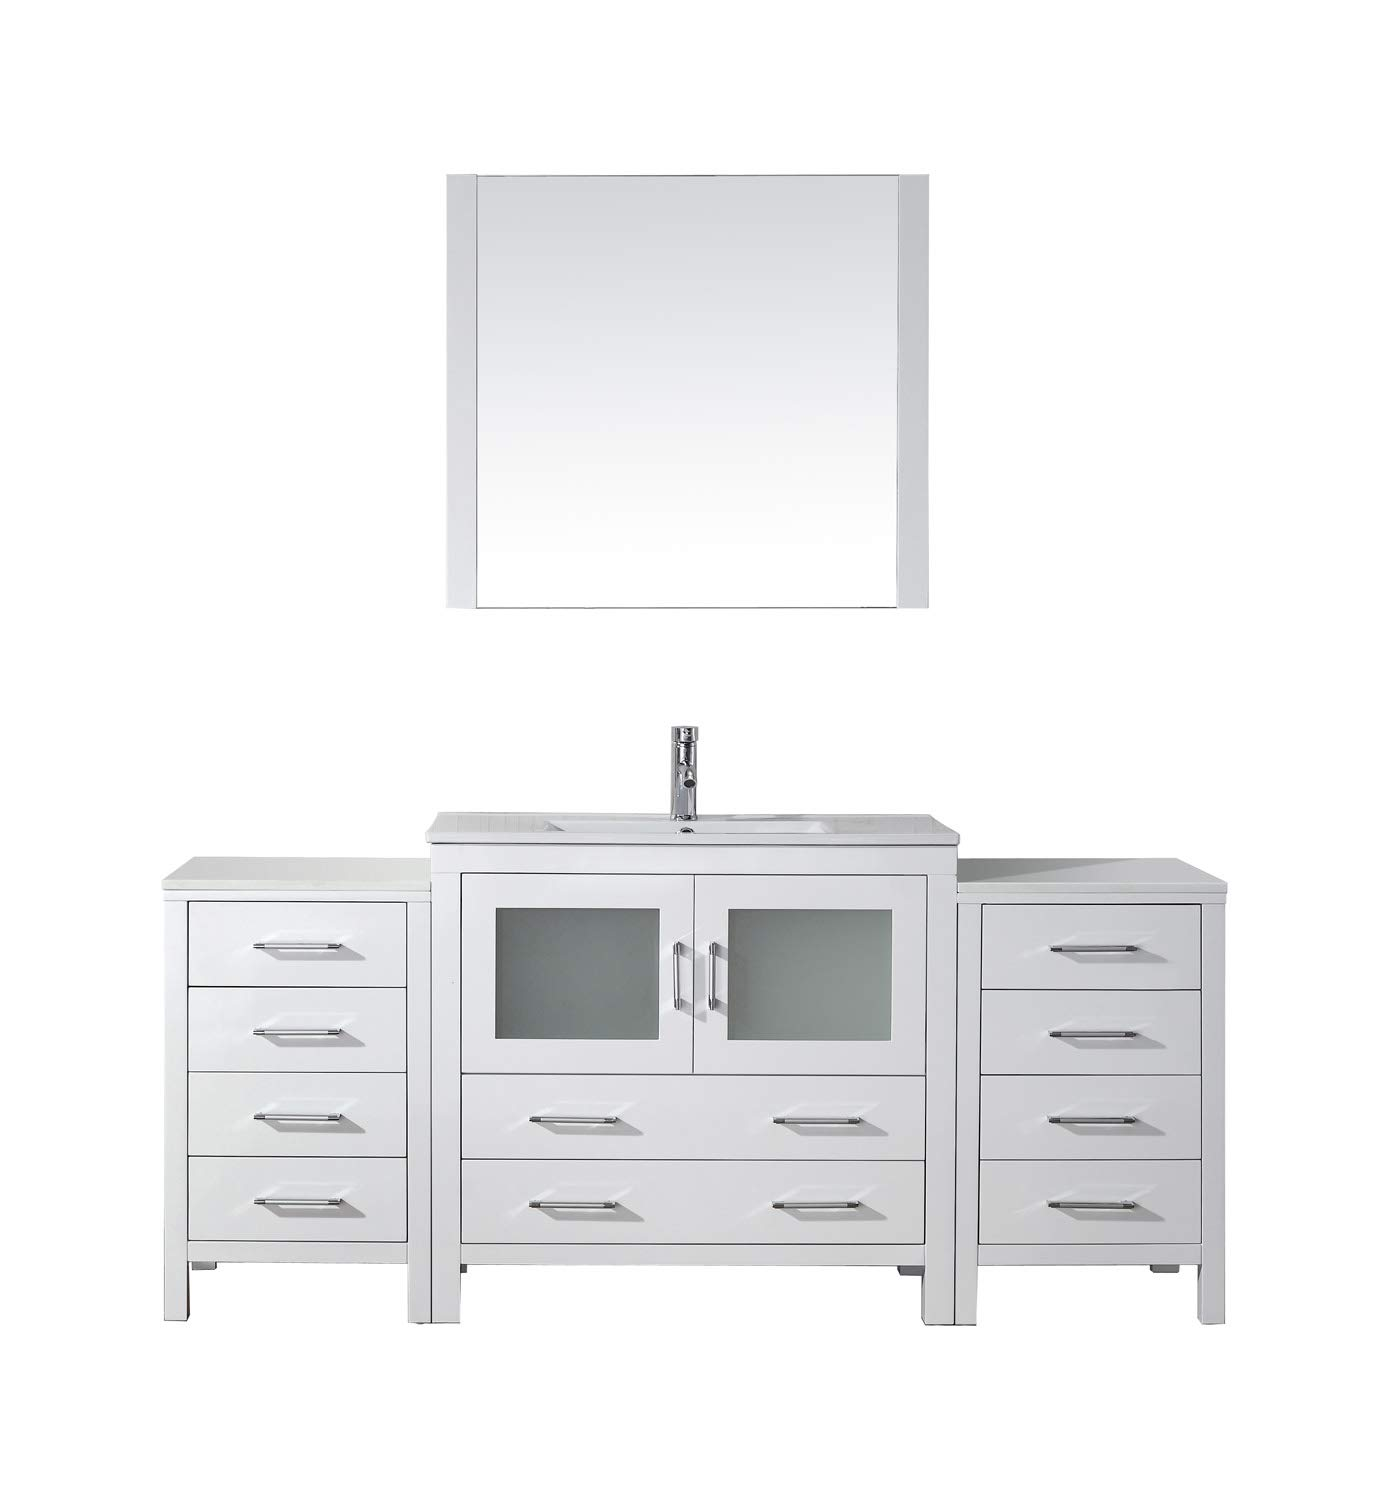 Super Virtu Usa Ks 70072 C Wh 001 Dior 72 Single Bathroom Vanity White Ceramic Top And Square Sink With Brushed Nickel Faucet And Mirror 72 Inches Home Remodeling Inspirations Cosmcuboardxyz